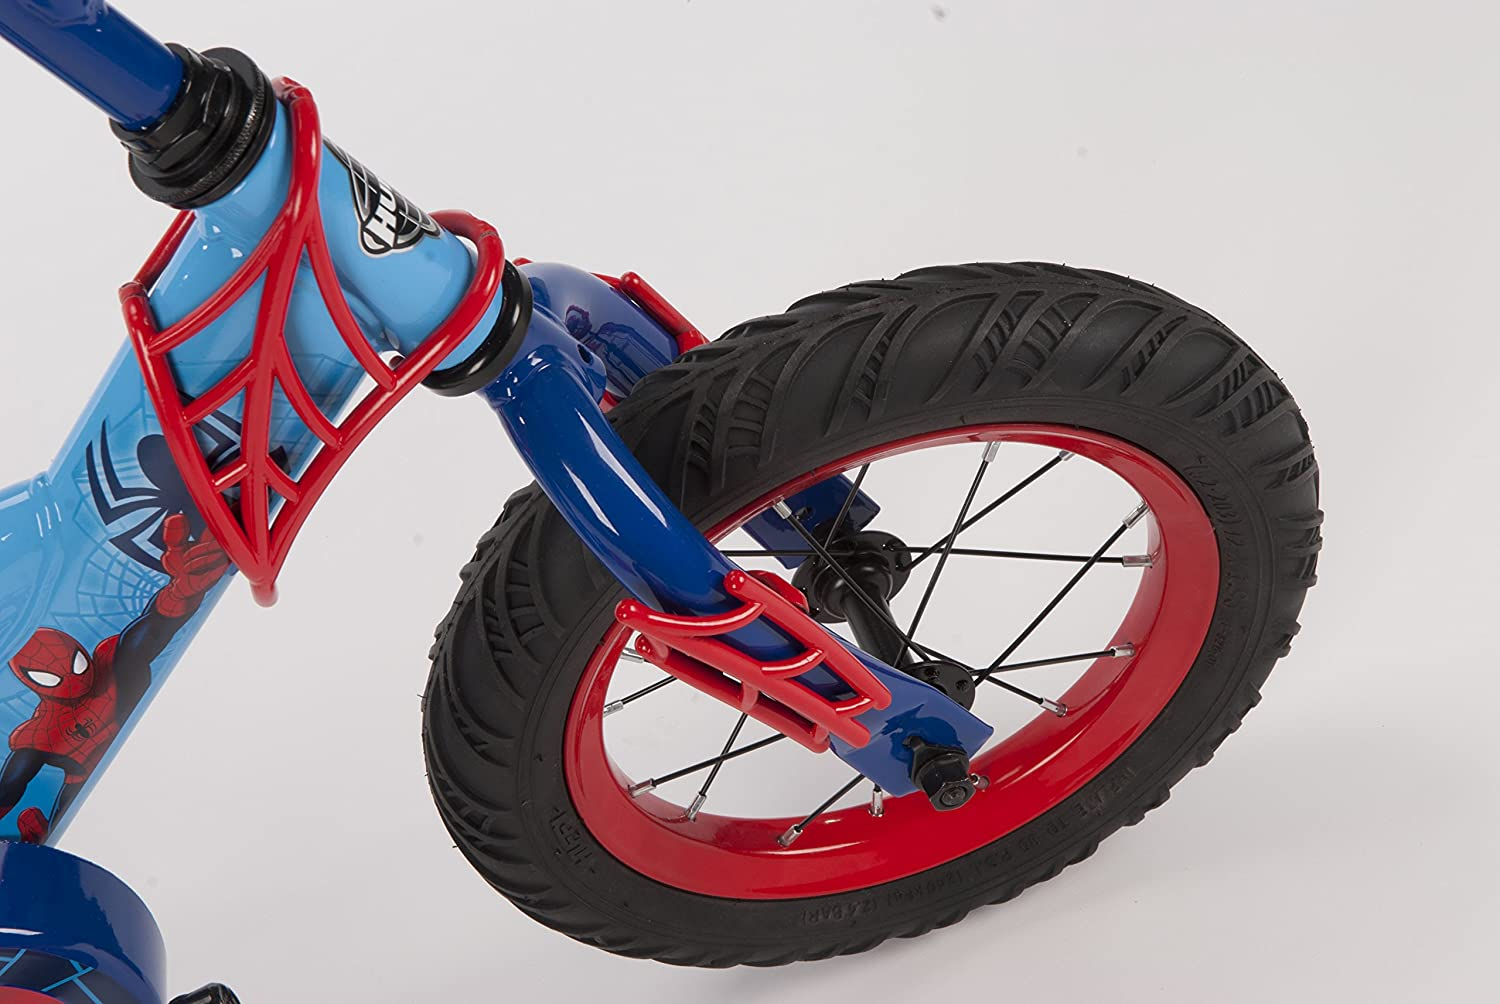 Amazon.com: Bicicleta de Marvel Spider-Man de 12 pulgadas ...